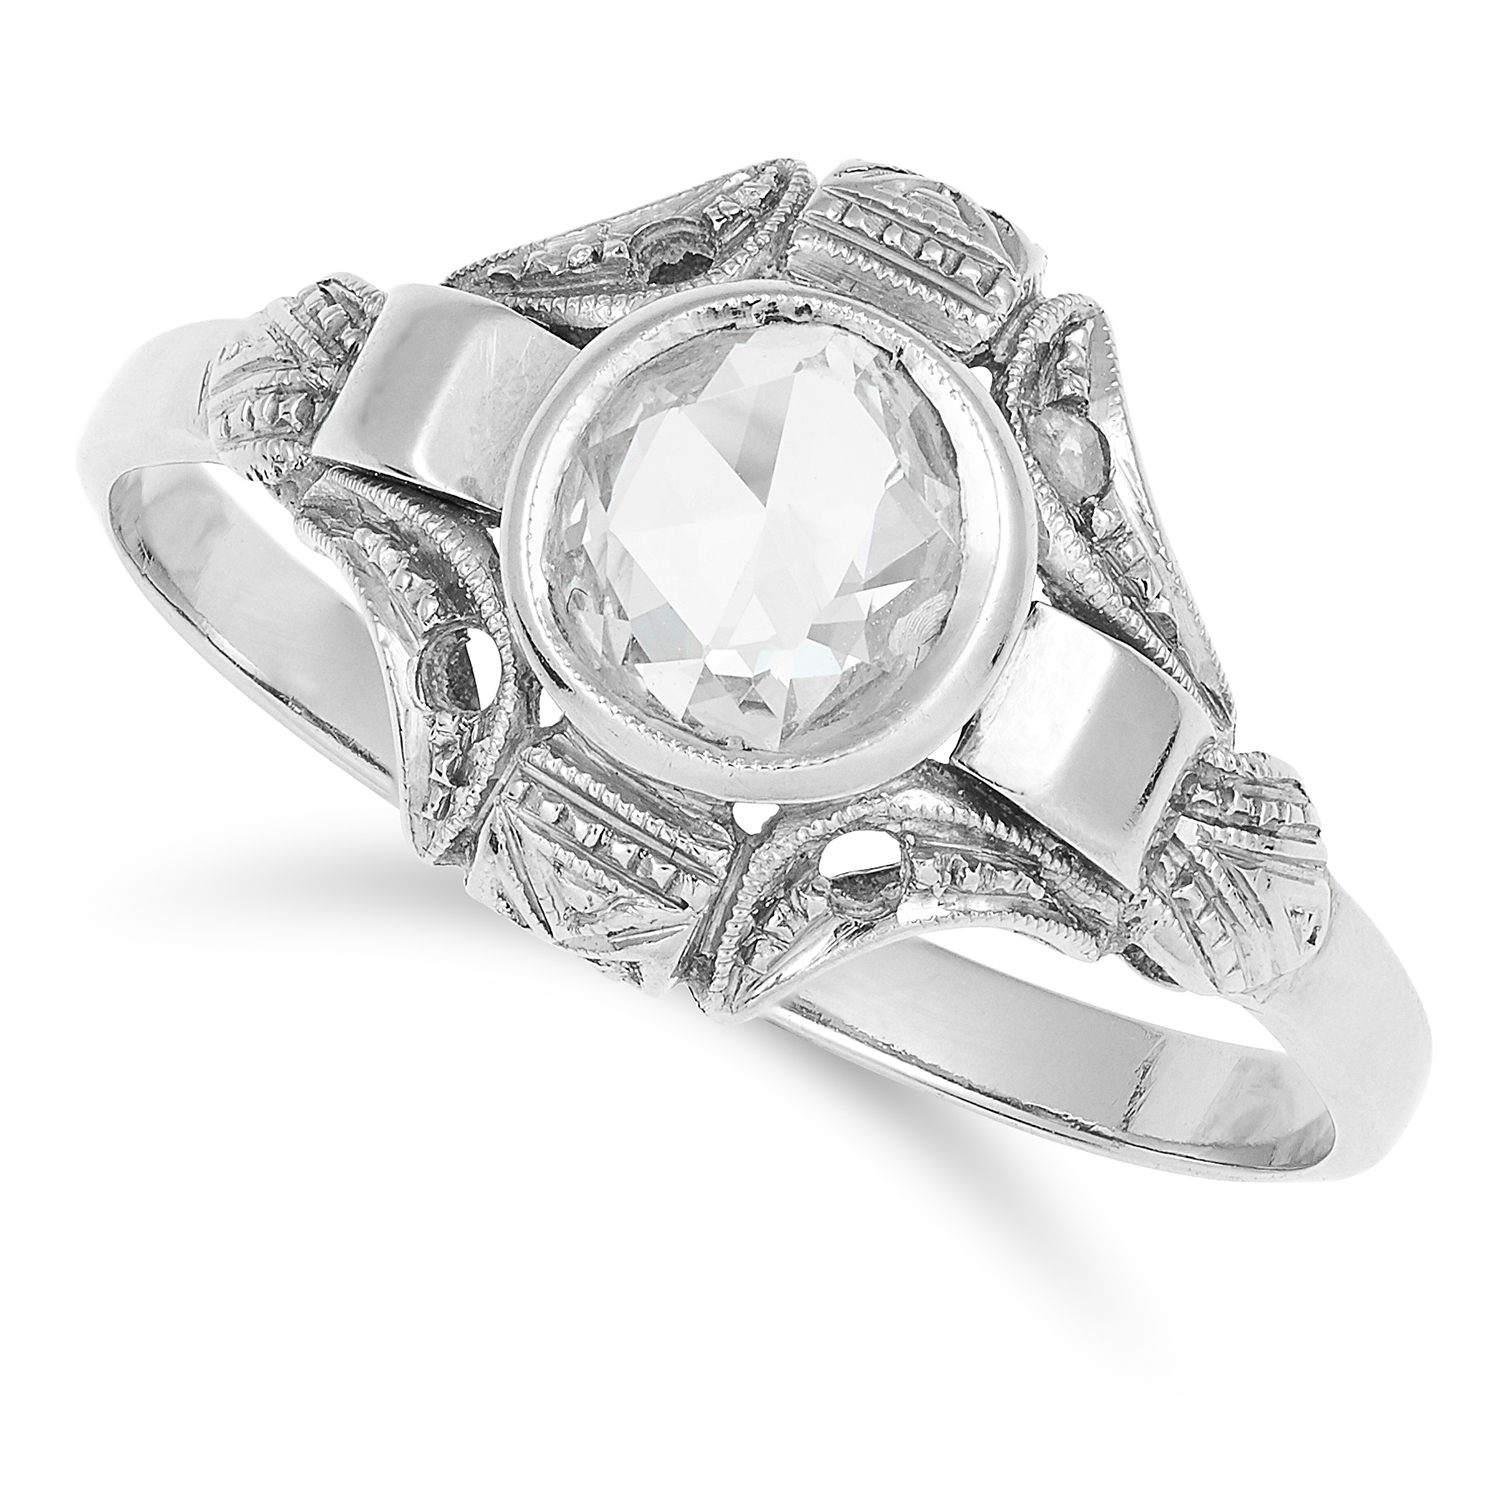 DIAMOND DRESS RING in Art Deco style, set with a rose cut diamond, size P / 7.5, 2.0g.